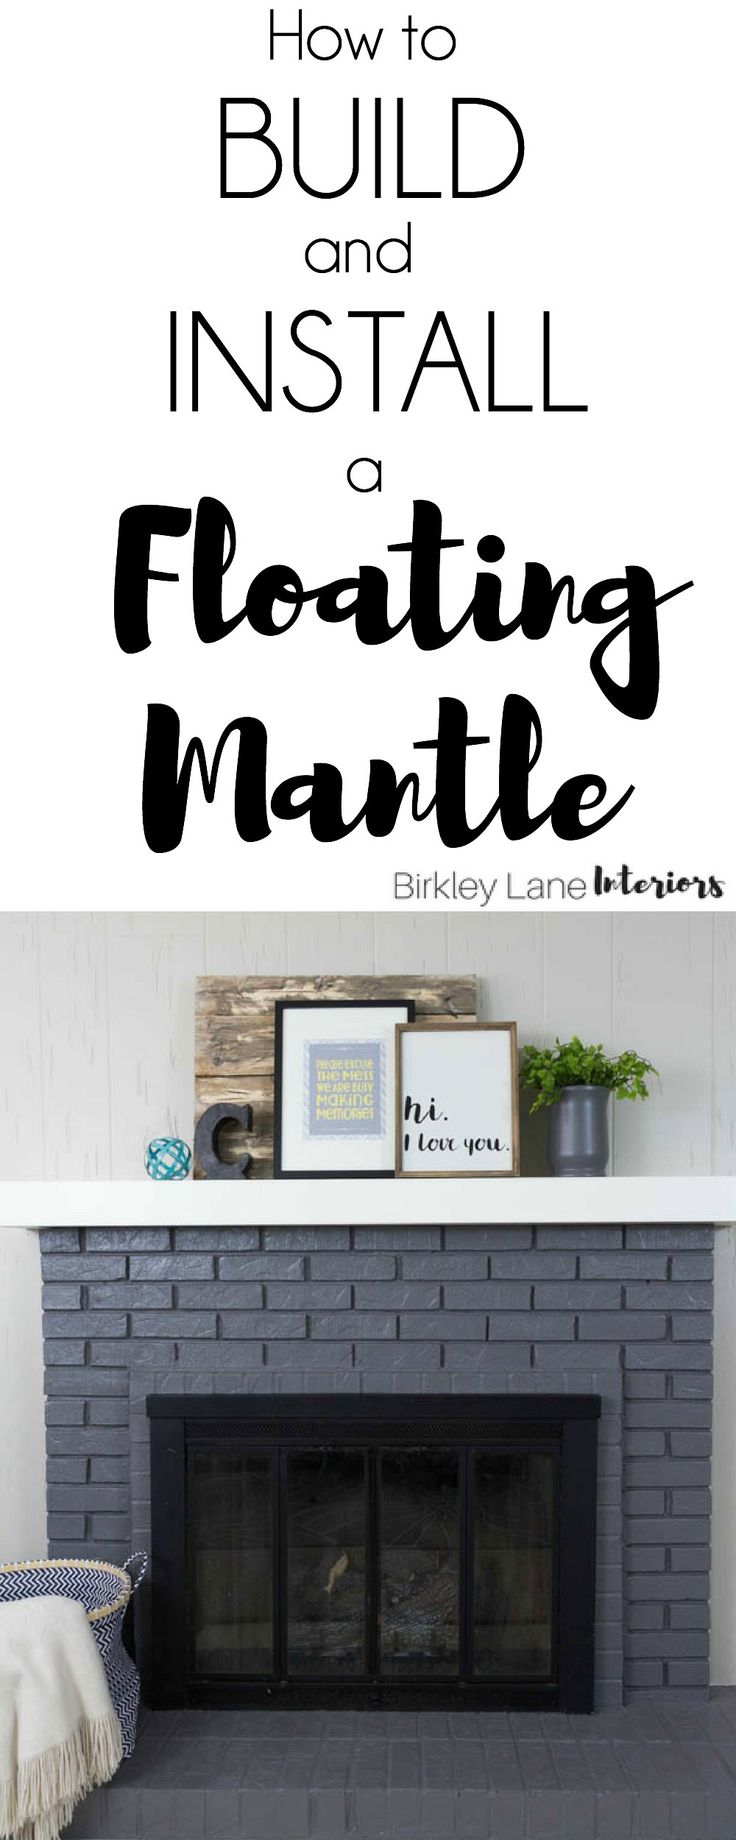 How to build a floating mantle, floating mantle, floating mantle fireplace, floating mantle DIY, how to install floating mantle, mantle pice ideas, floating mantle piece